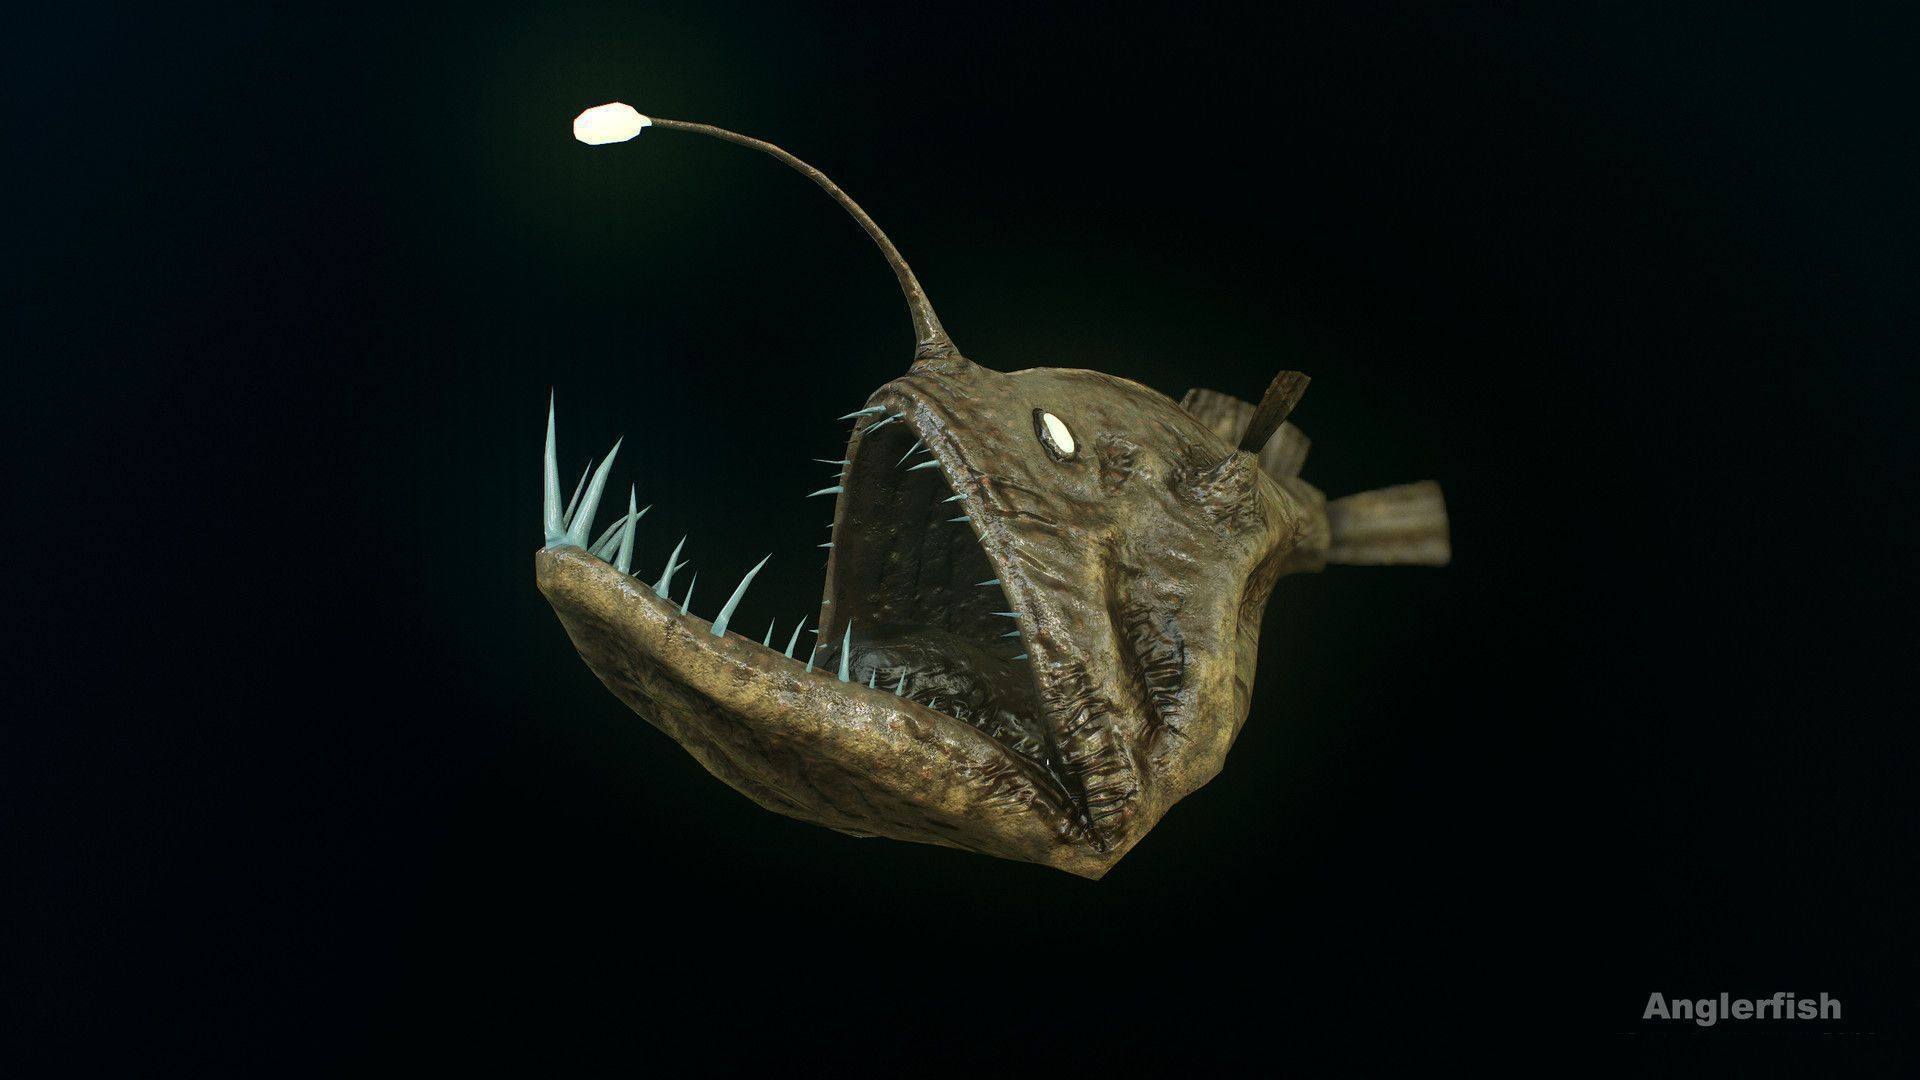 Anglerfish wallpapers backgrounds for Angler fish size